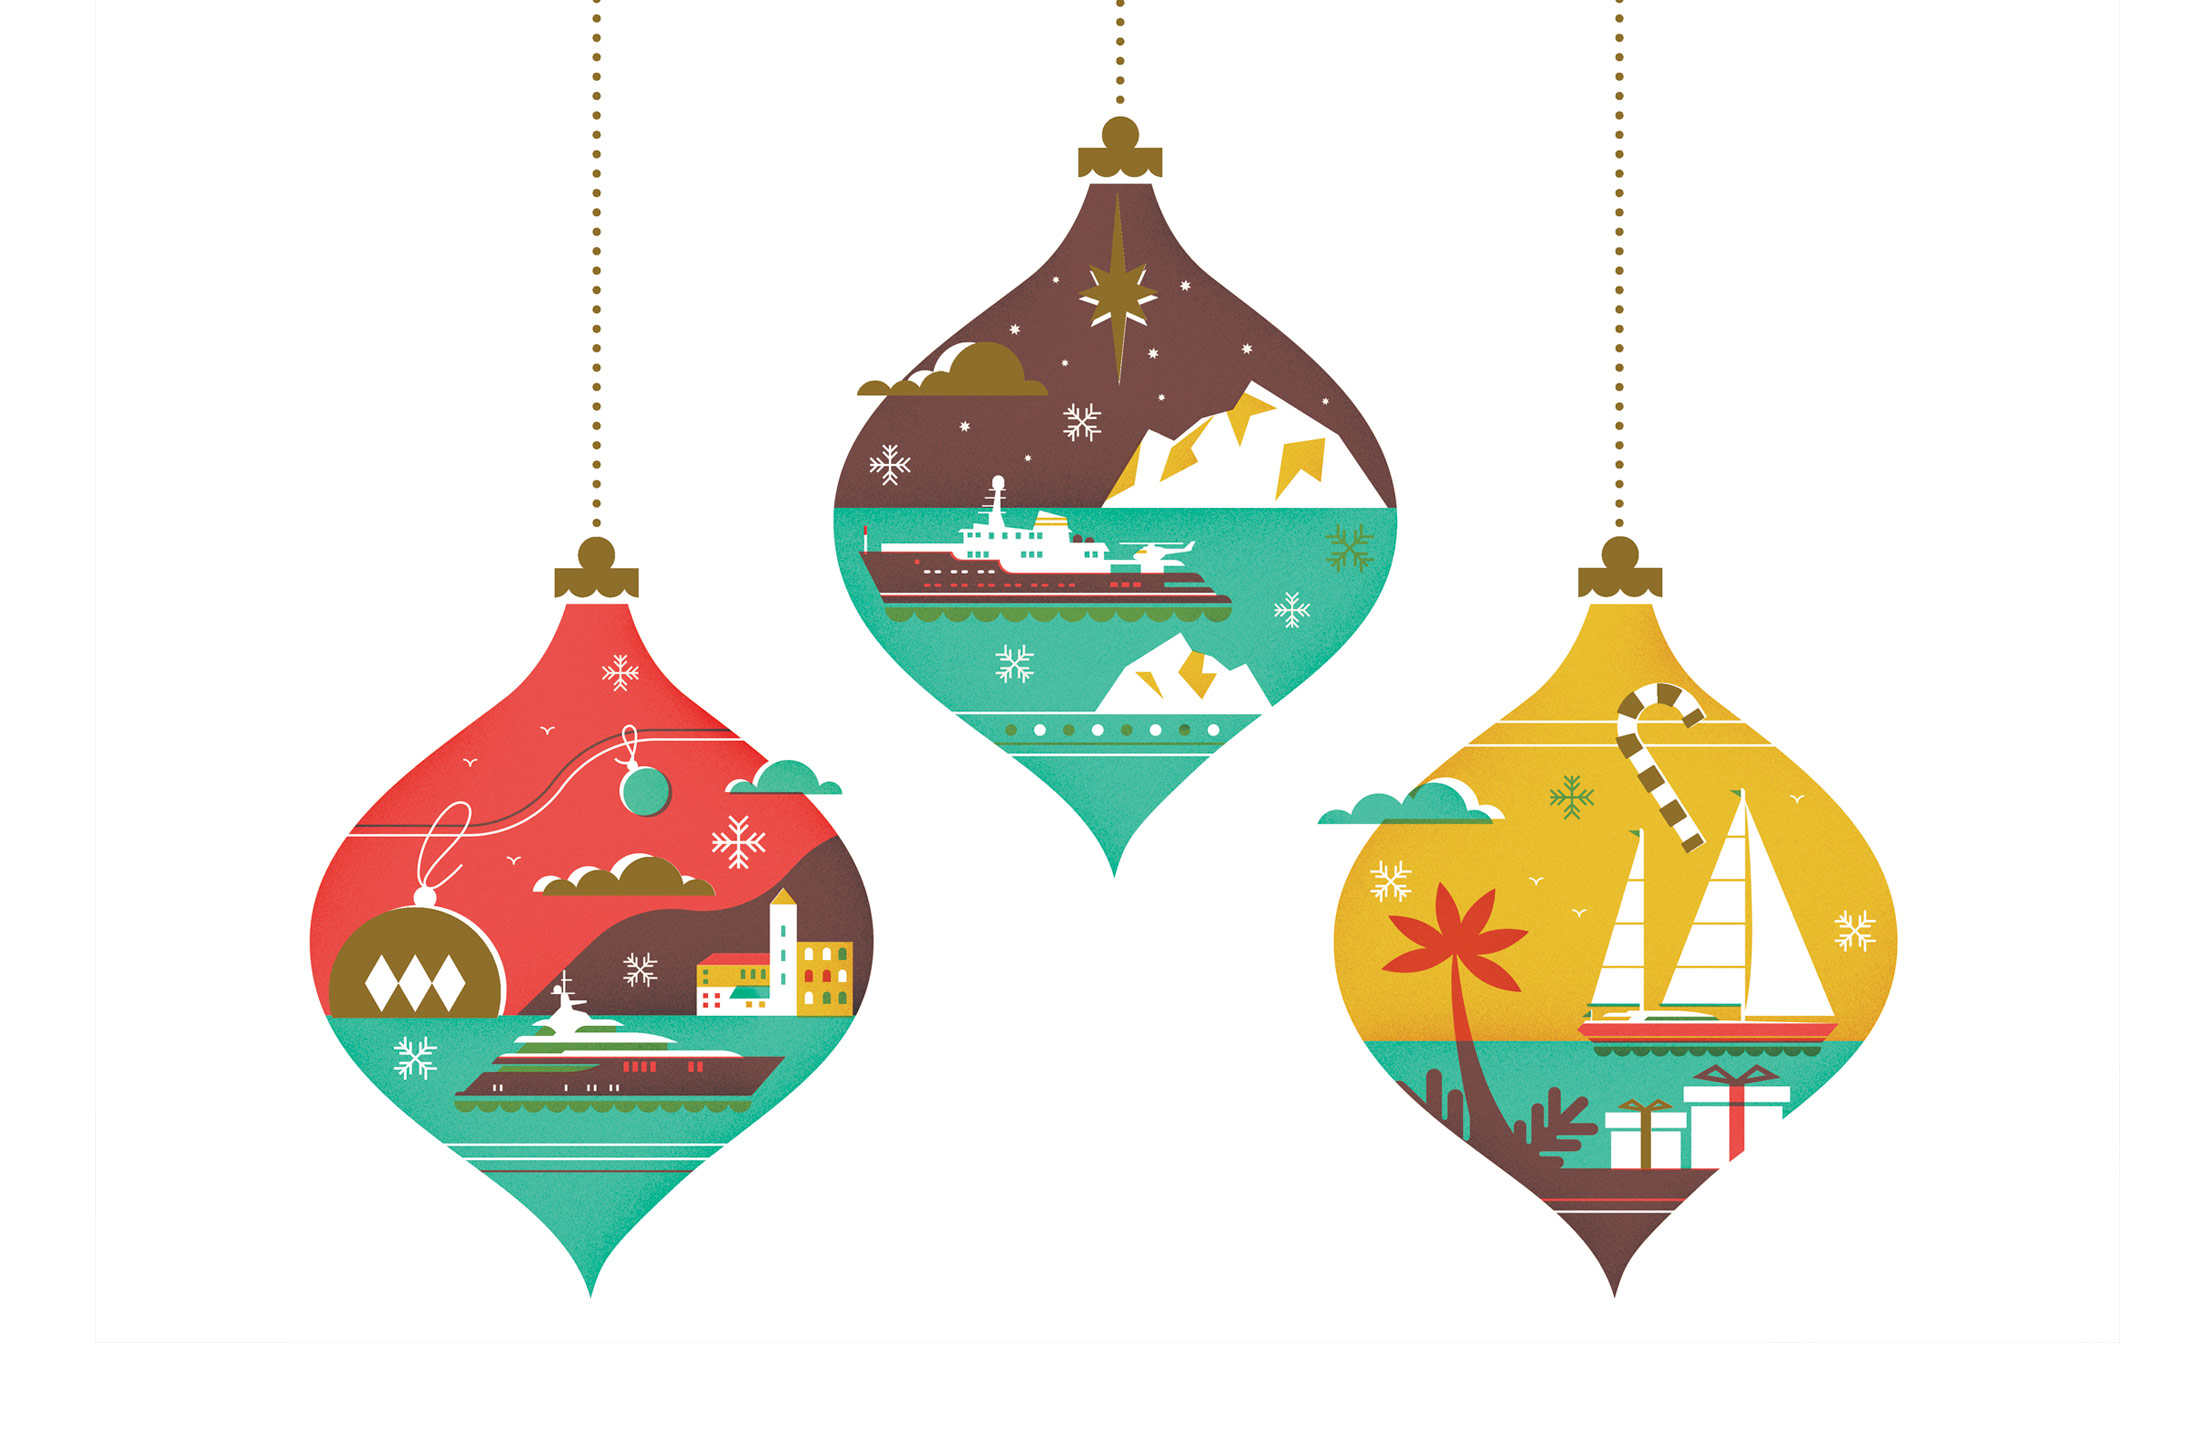 Camper & Nicholsons holiday card illustration by Parko Polo